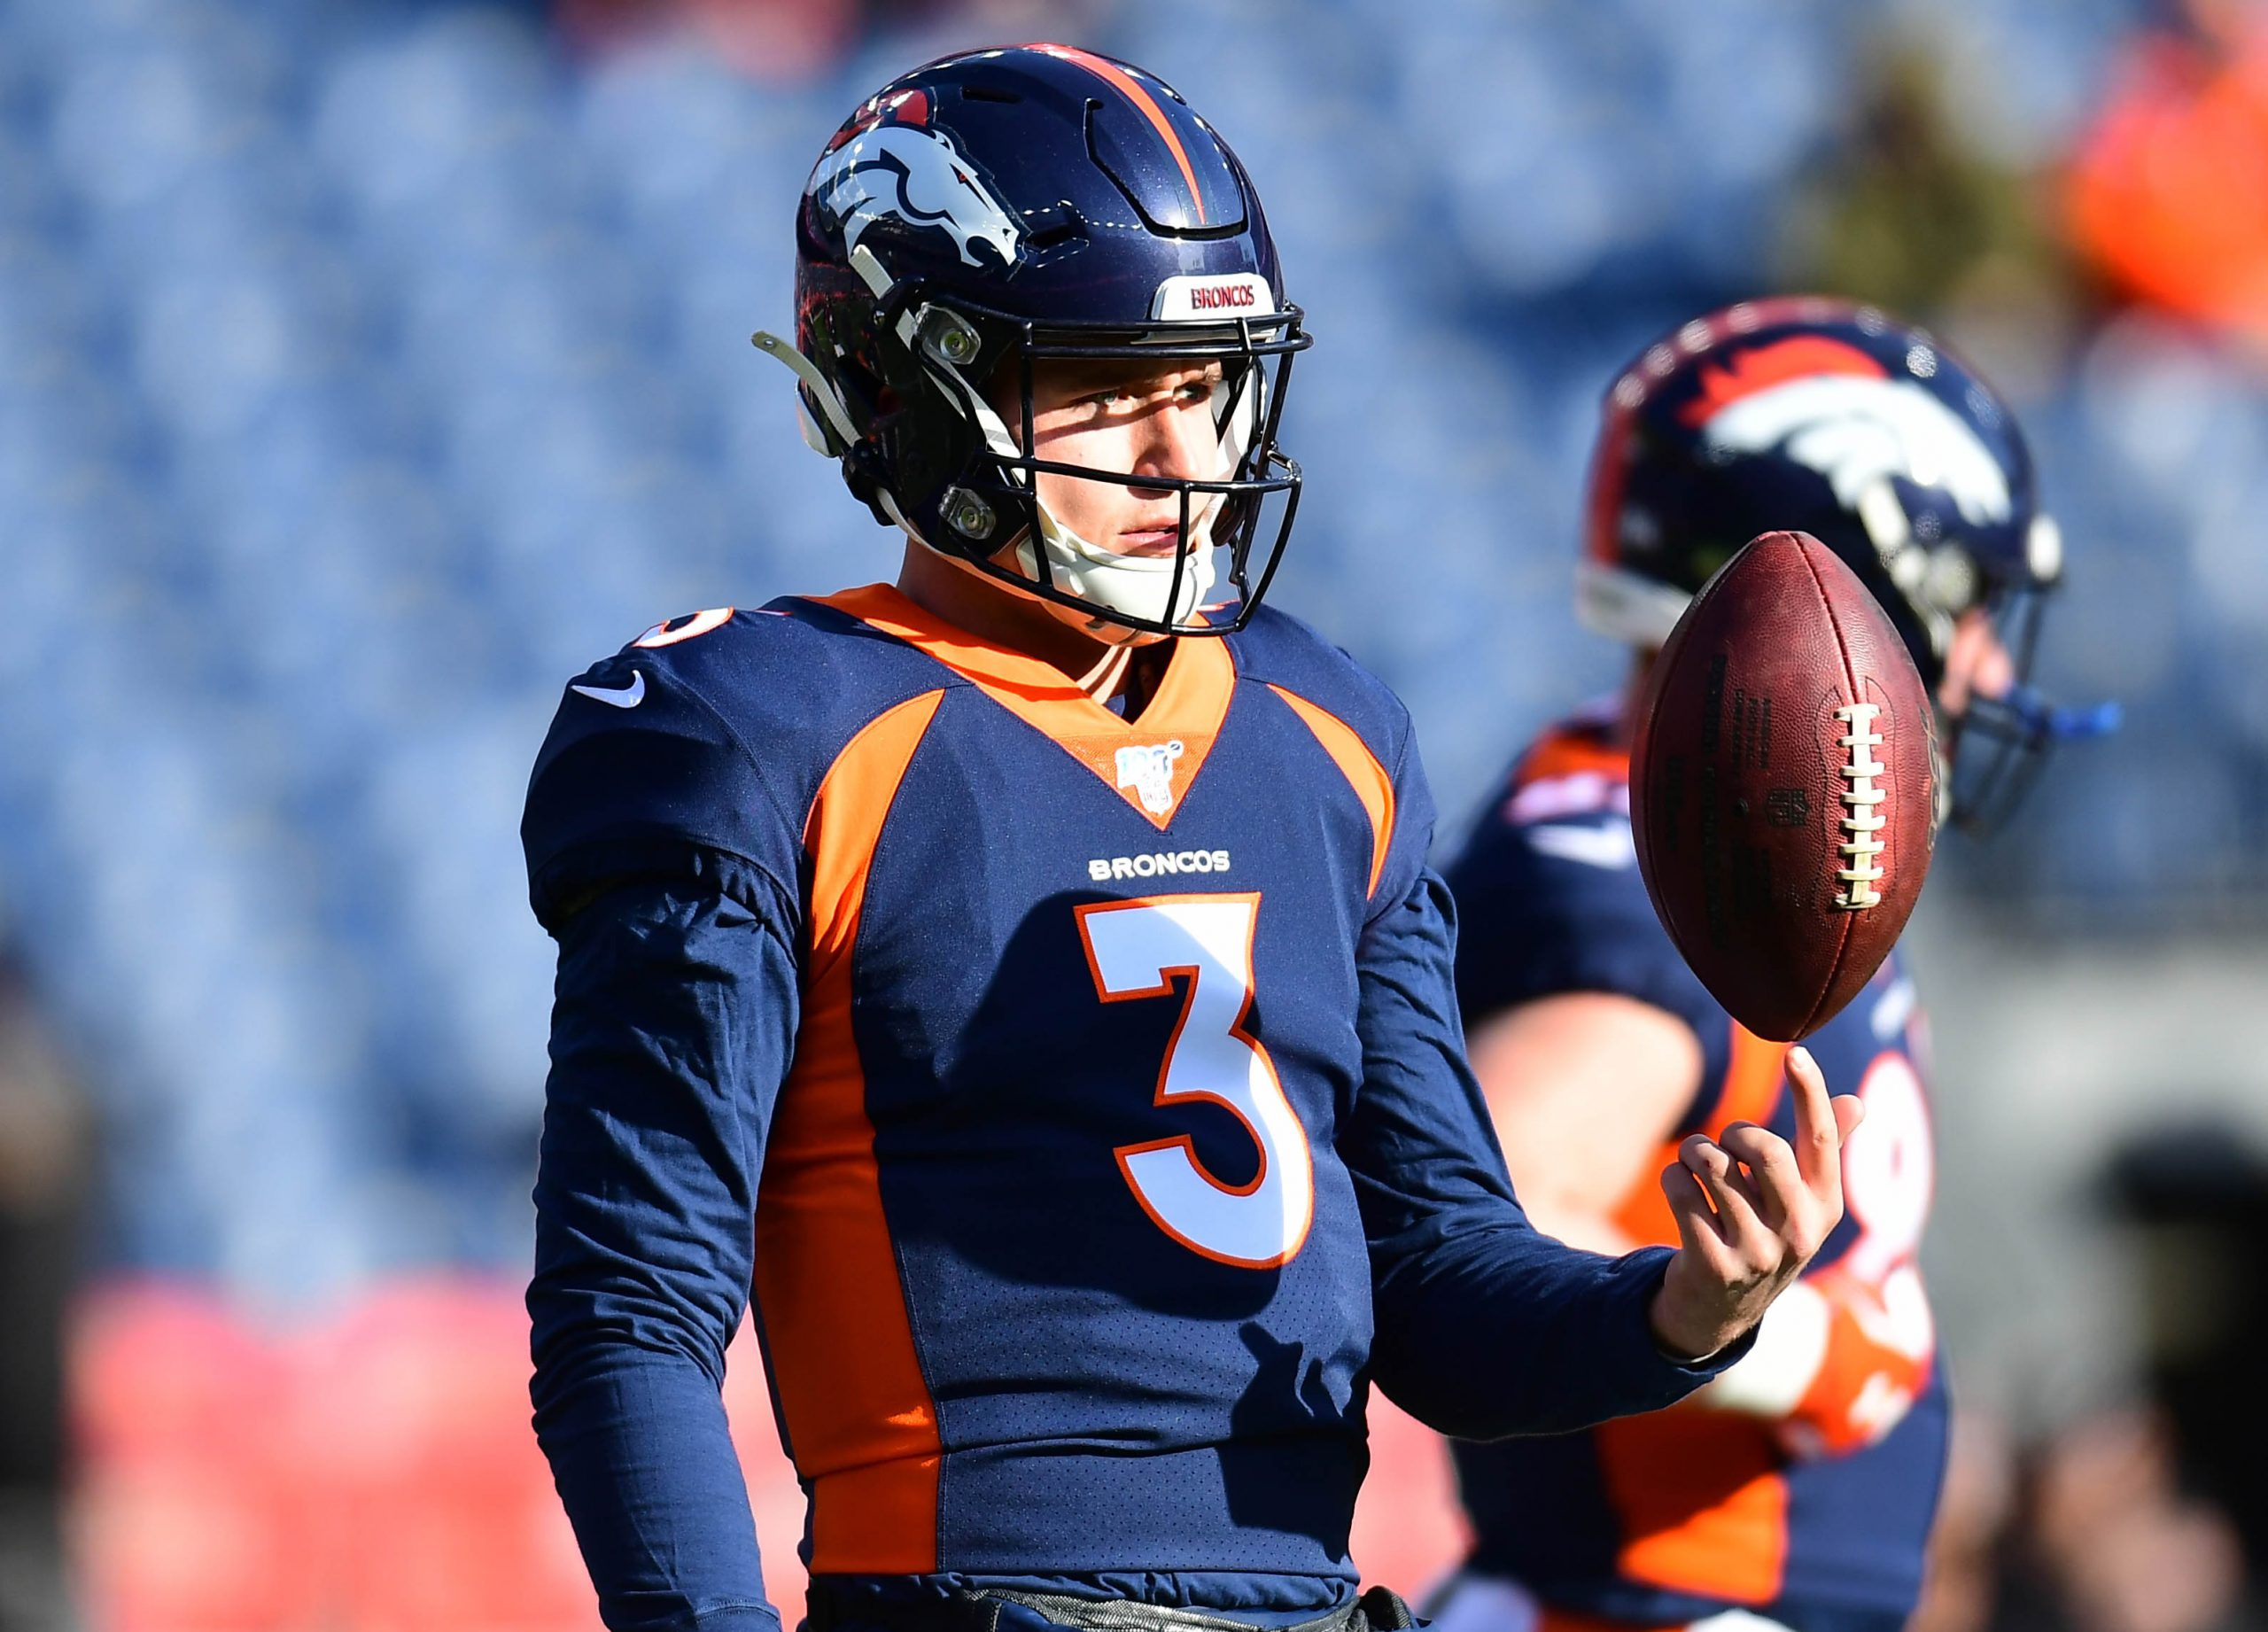 Dec 1, 2019; Denver, CO, USA; Denver Broncos quarterback Drew Lock (3) before the game against the Los Angeles Chargers at Empower Field at Mile High. Mandatory Credit: Ron Chenoy-USA TODAY Sports